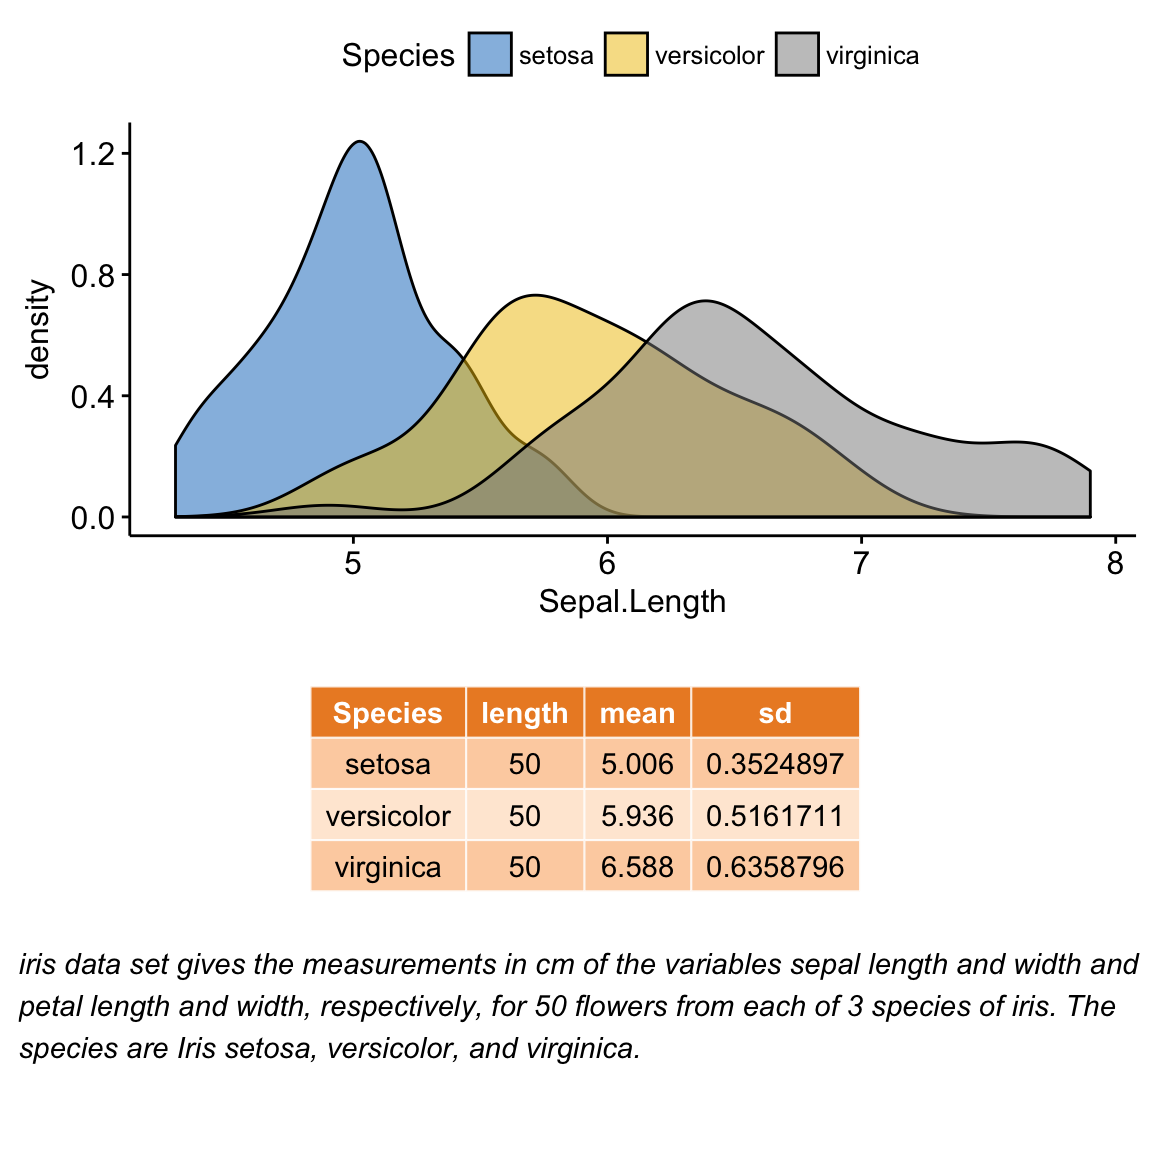 ggplot2 – Easy way to mix multiple graphs on the same page